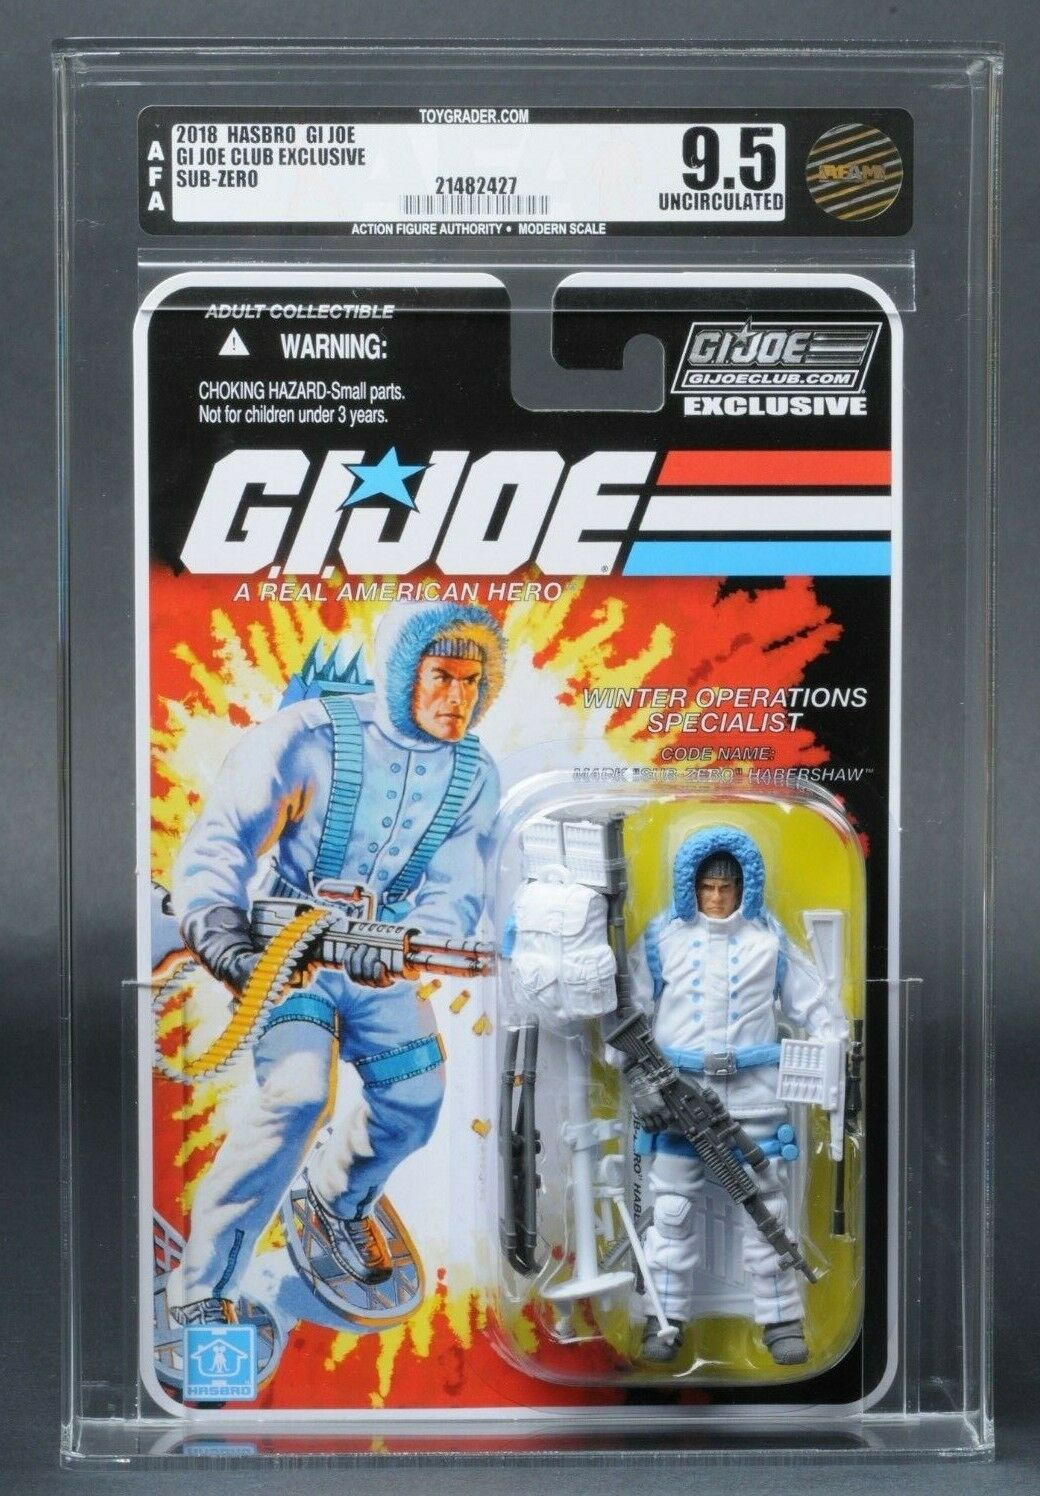 2018 GI Joe Sub-Zero AFA U9.5 Club Exclusive FSS 6.0 MOC